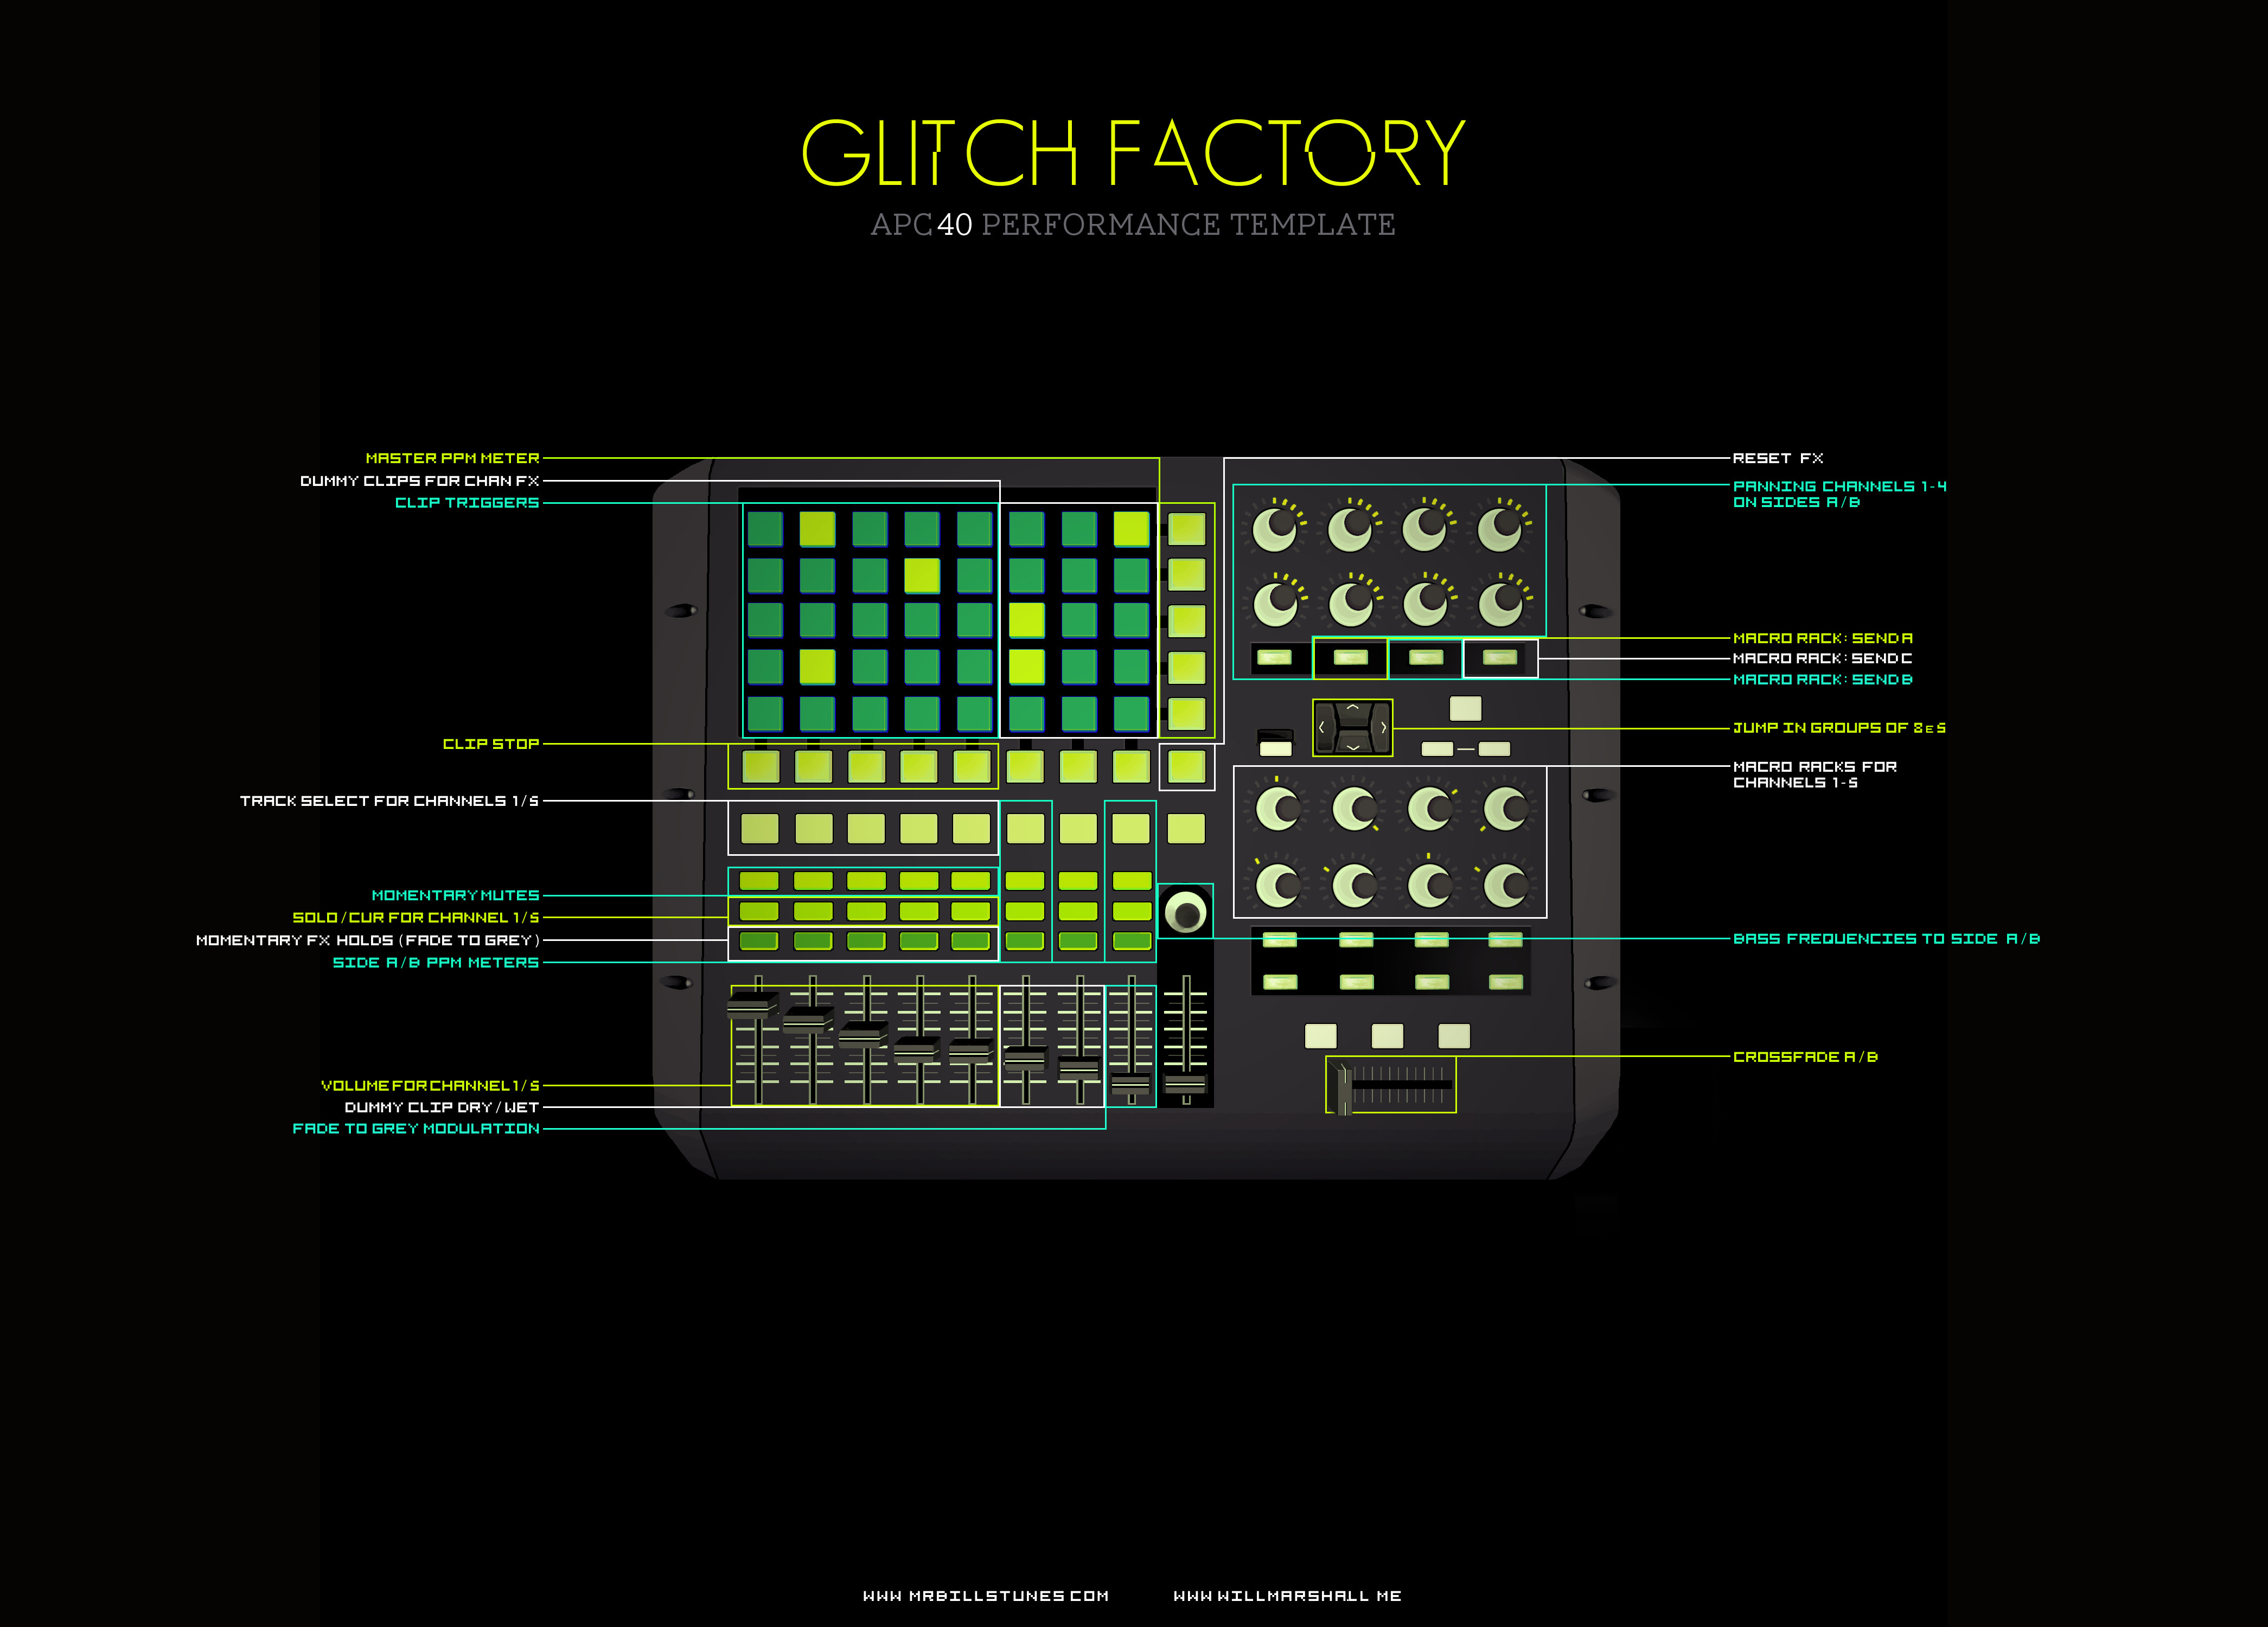 Glitch Factory APC40 Performance Template by Bill and Will Marshall